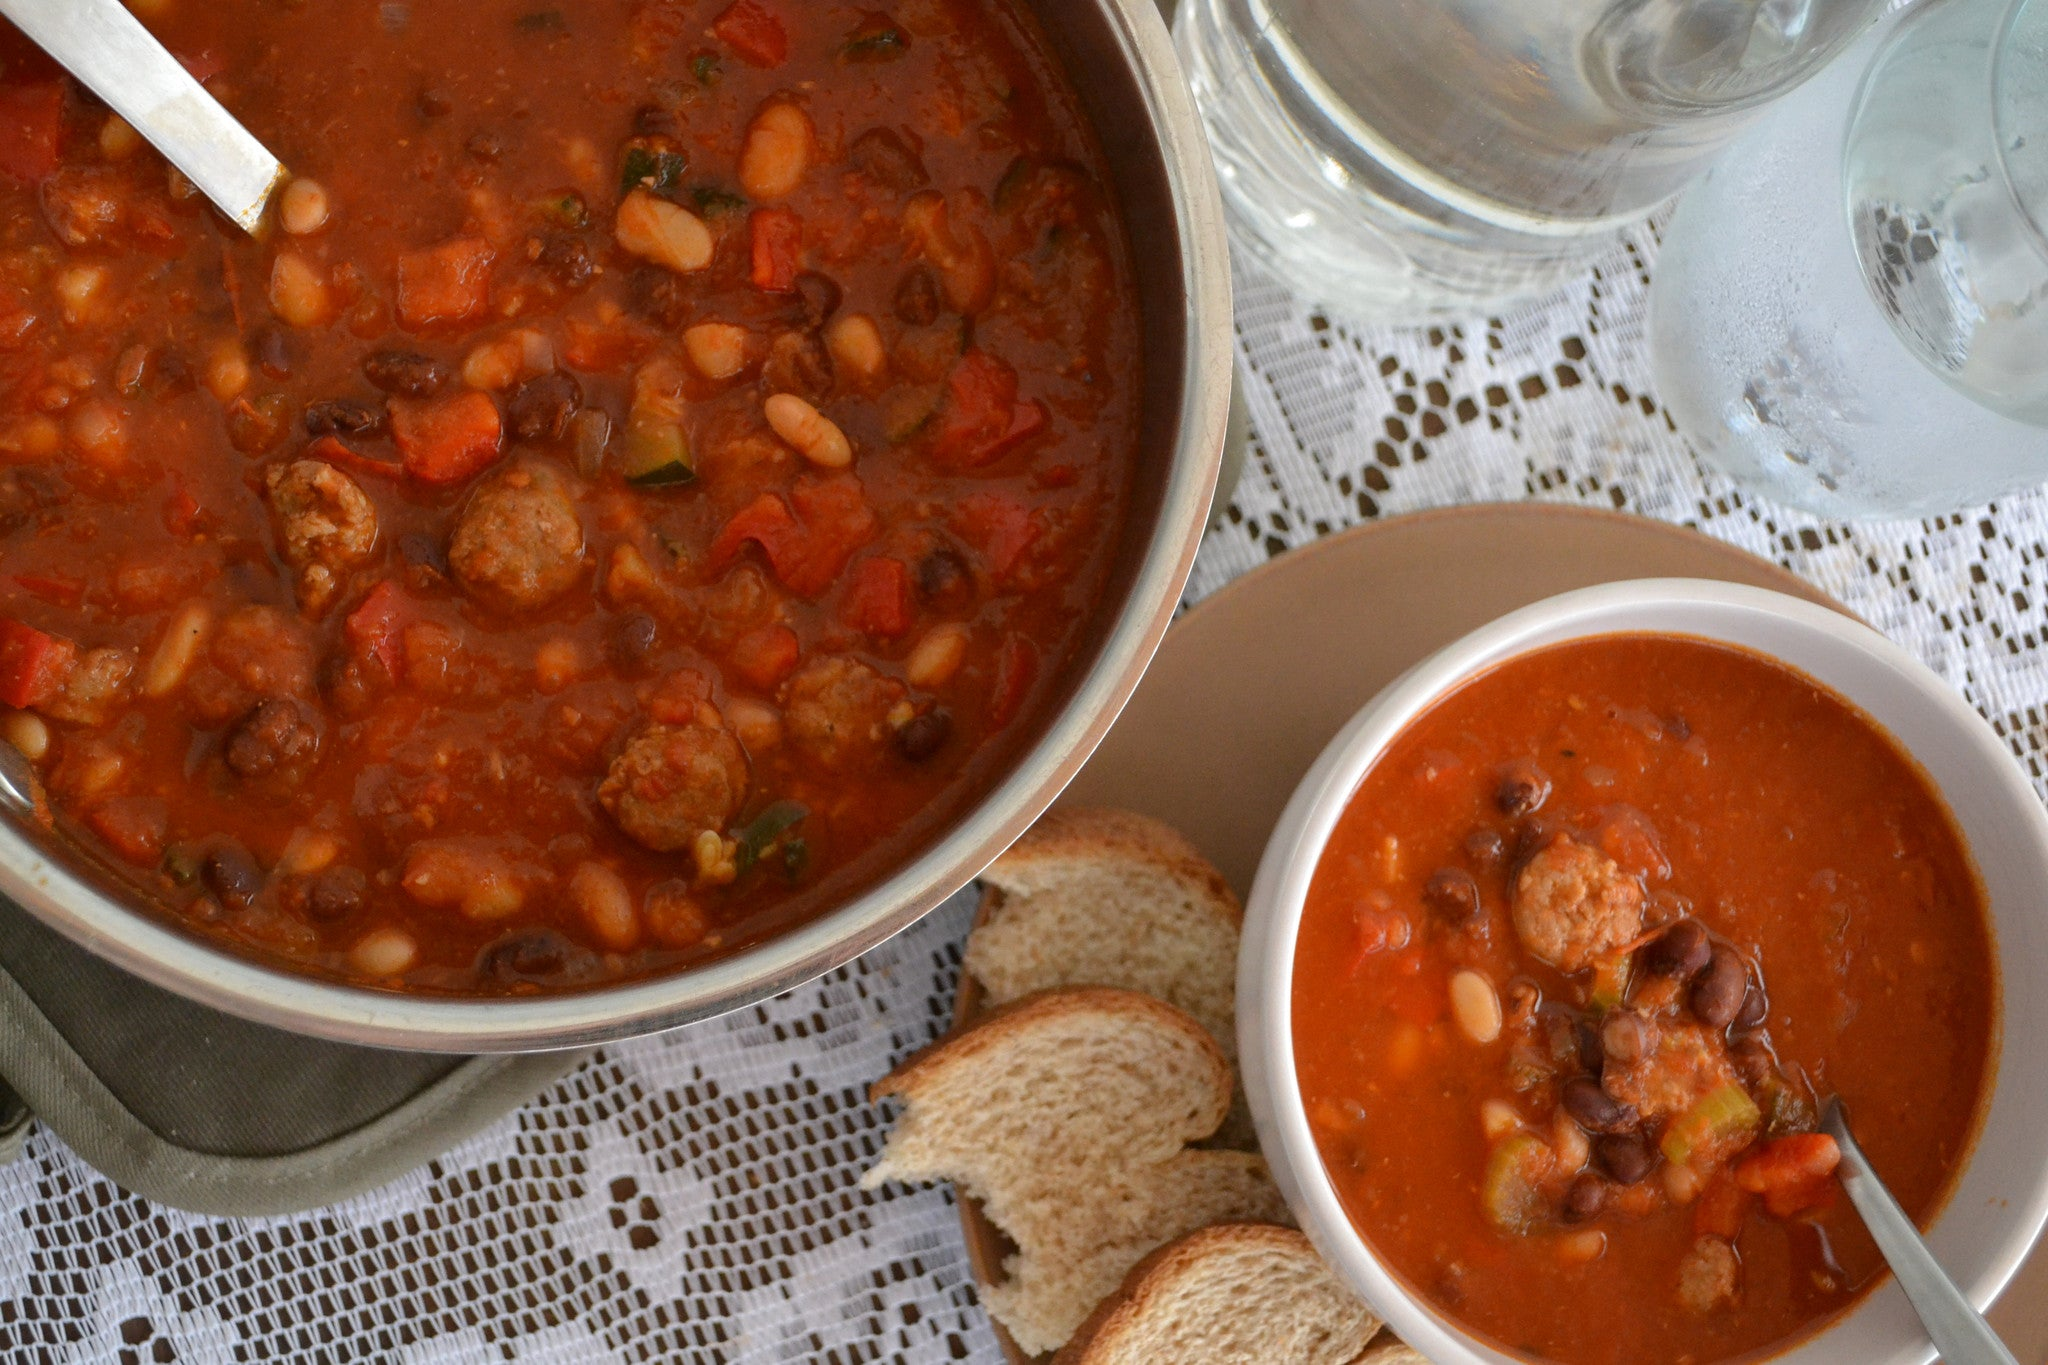 Hearty Turkey Sausage and Bean Chili